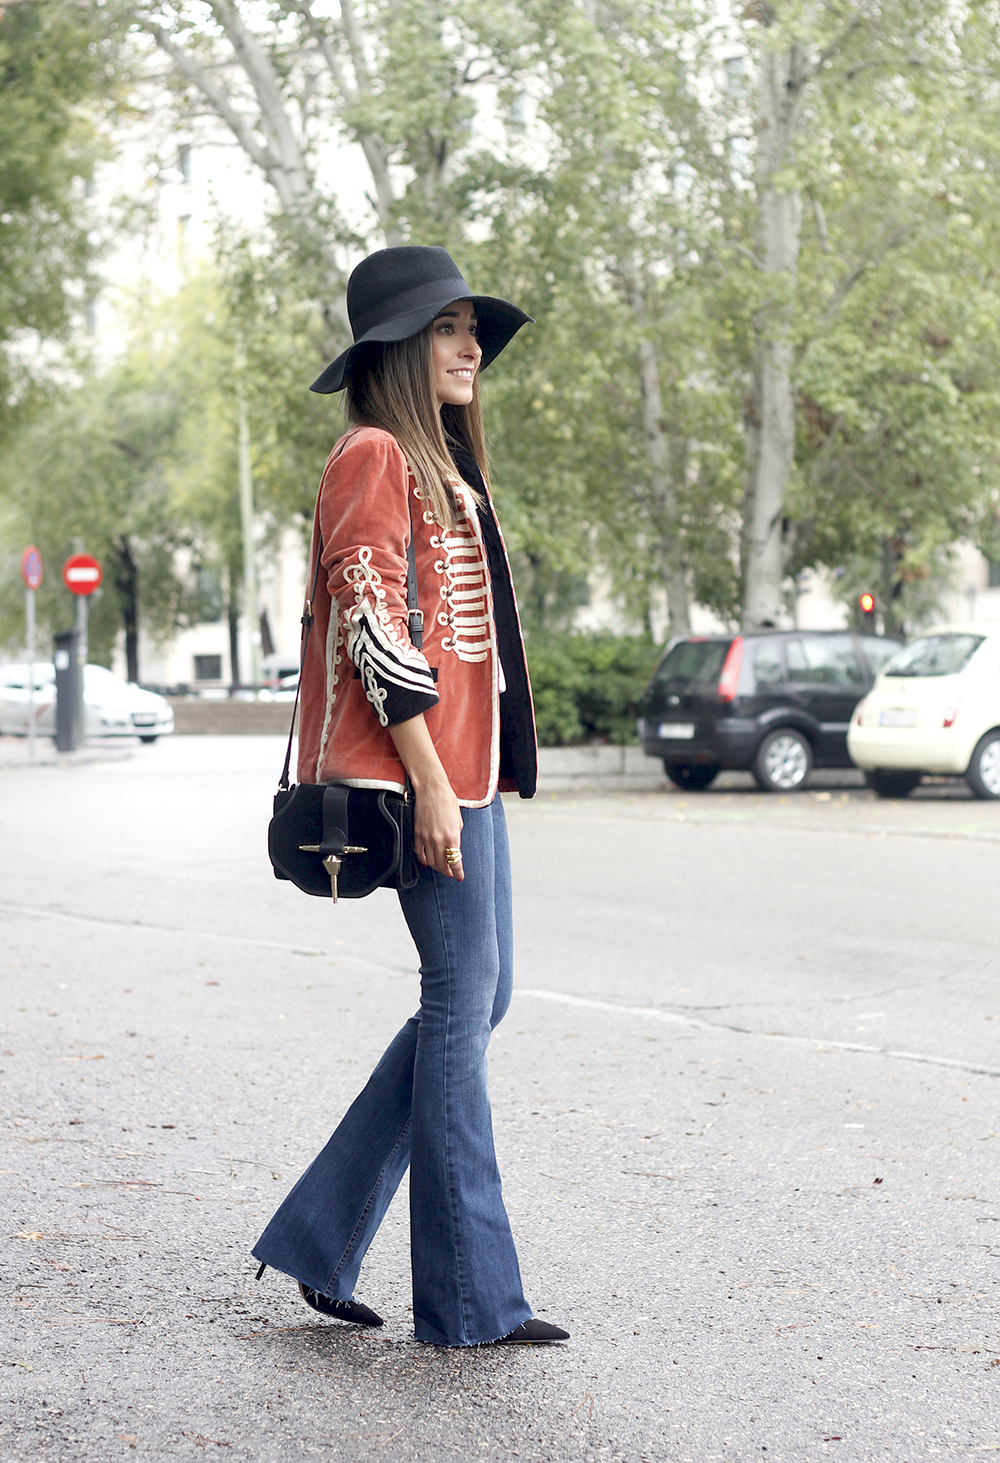 velvet jacket jeans hat rainny day heels accessories outfit style fashion03